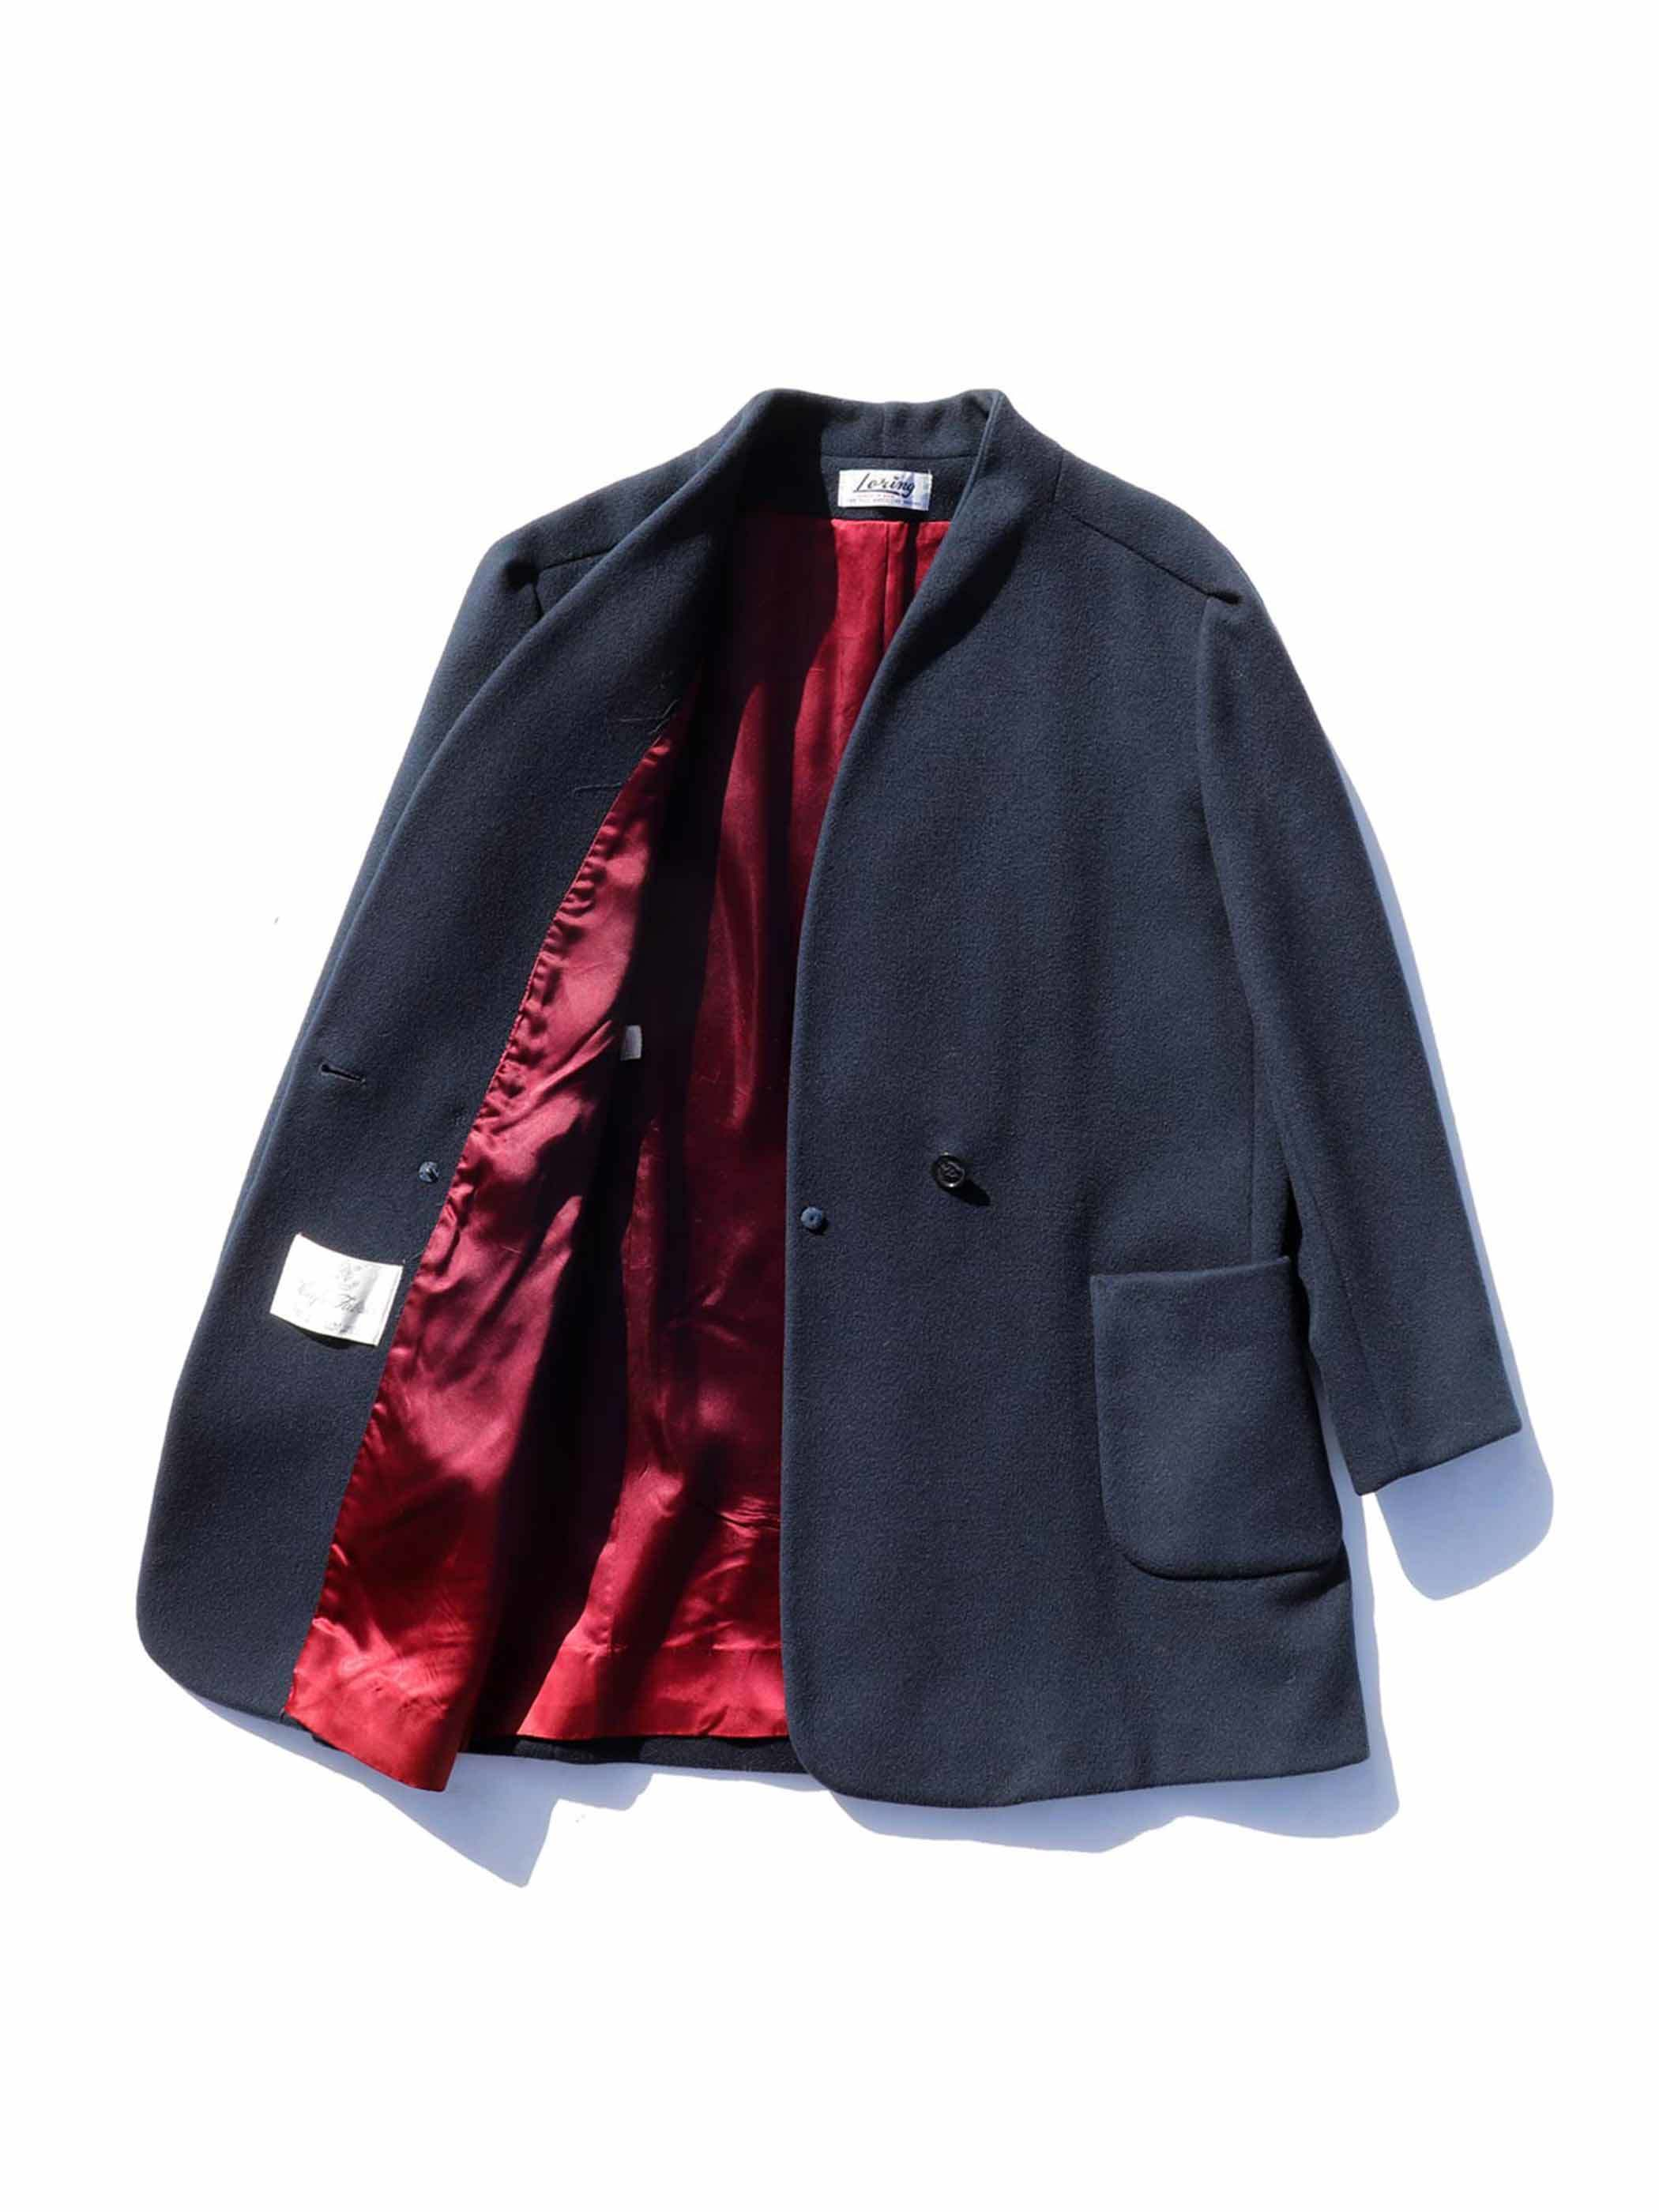 70's~ LORING USA製 ノーカラー ウールコート [About Women's L]